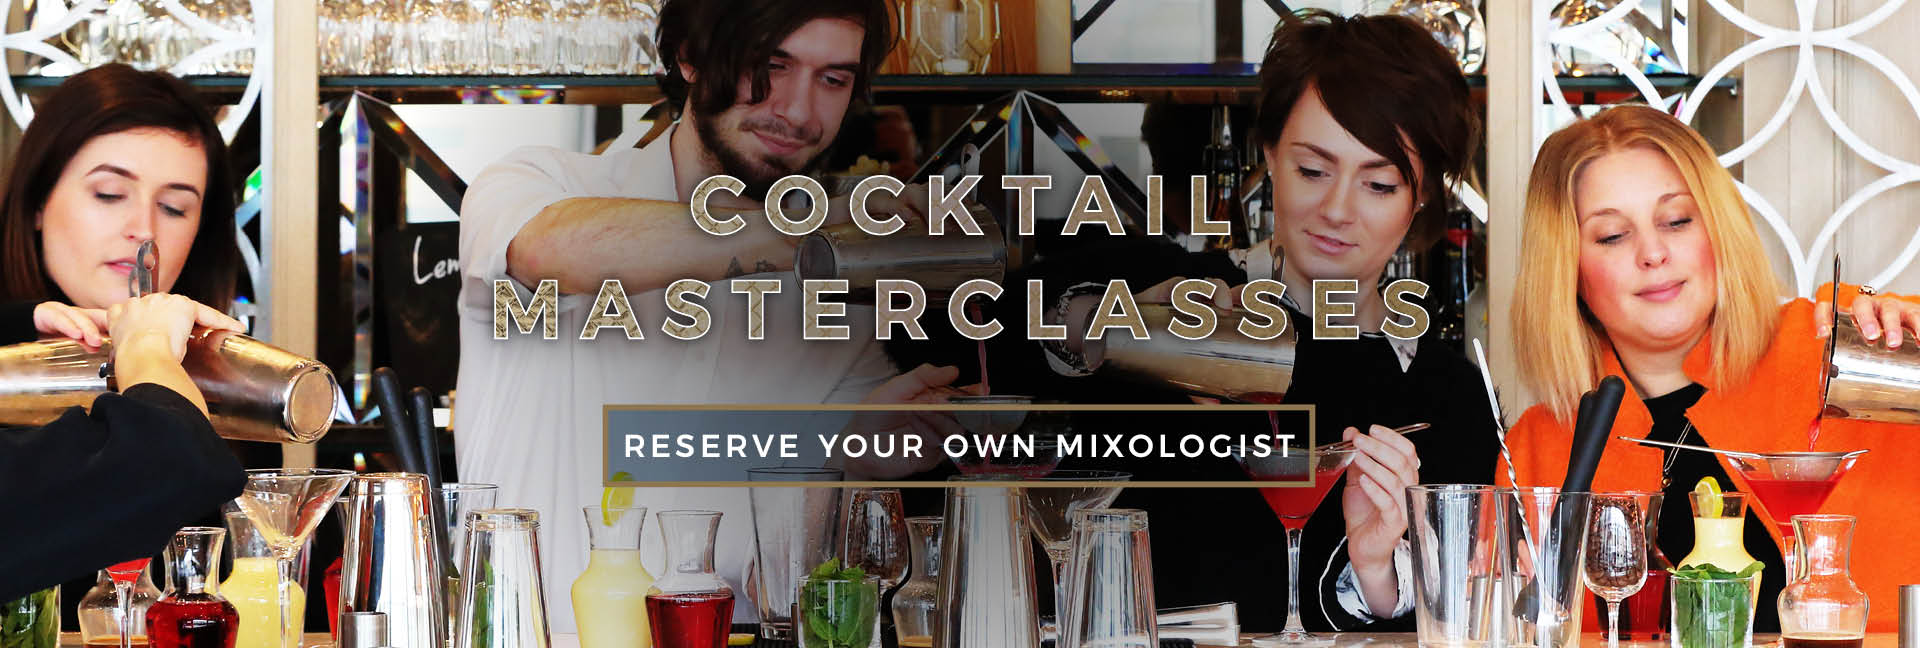 Cocktail Masterclass at All Bar One